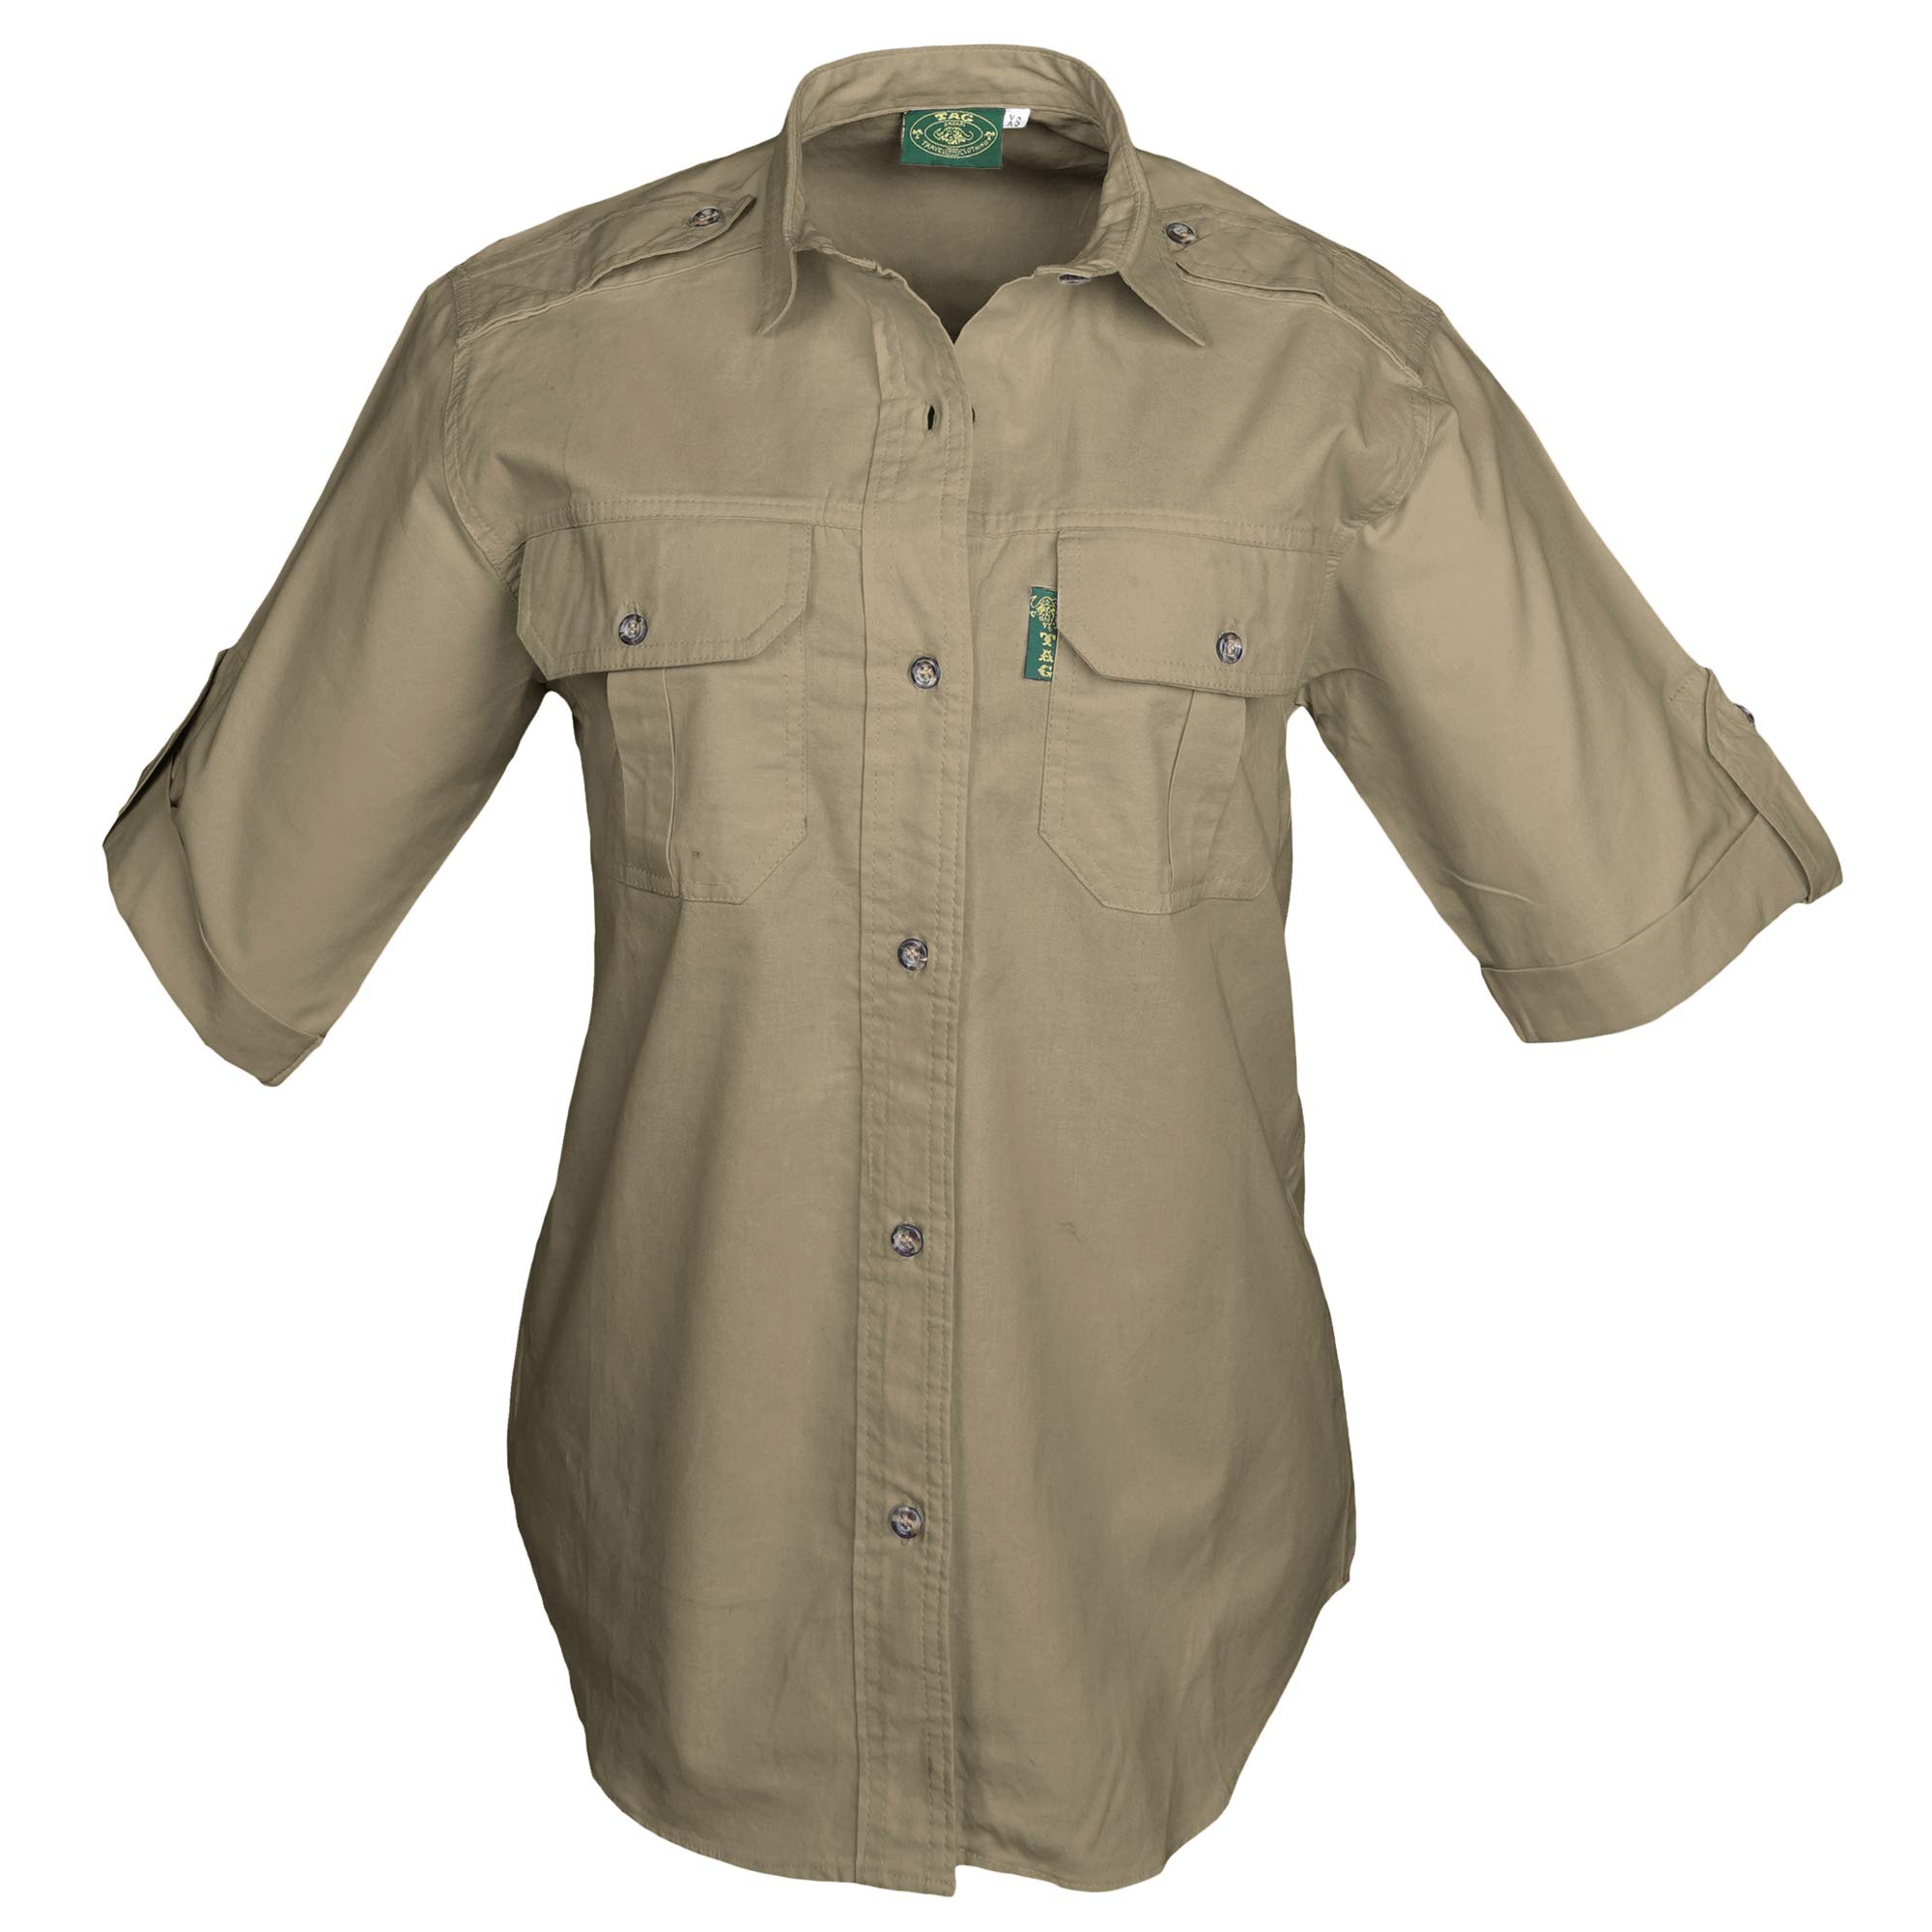 Tag Safari Trail Shirt for Women Short Sleeve, 100% Cotton Shirt for Hunters, Explorers, Photographers and Journalists